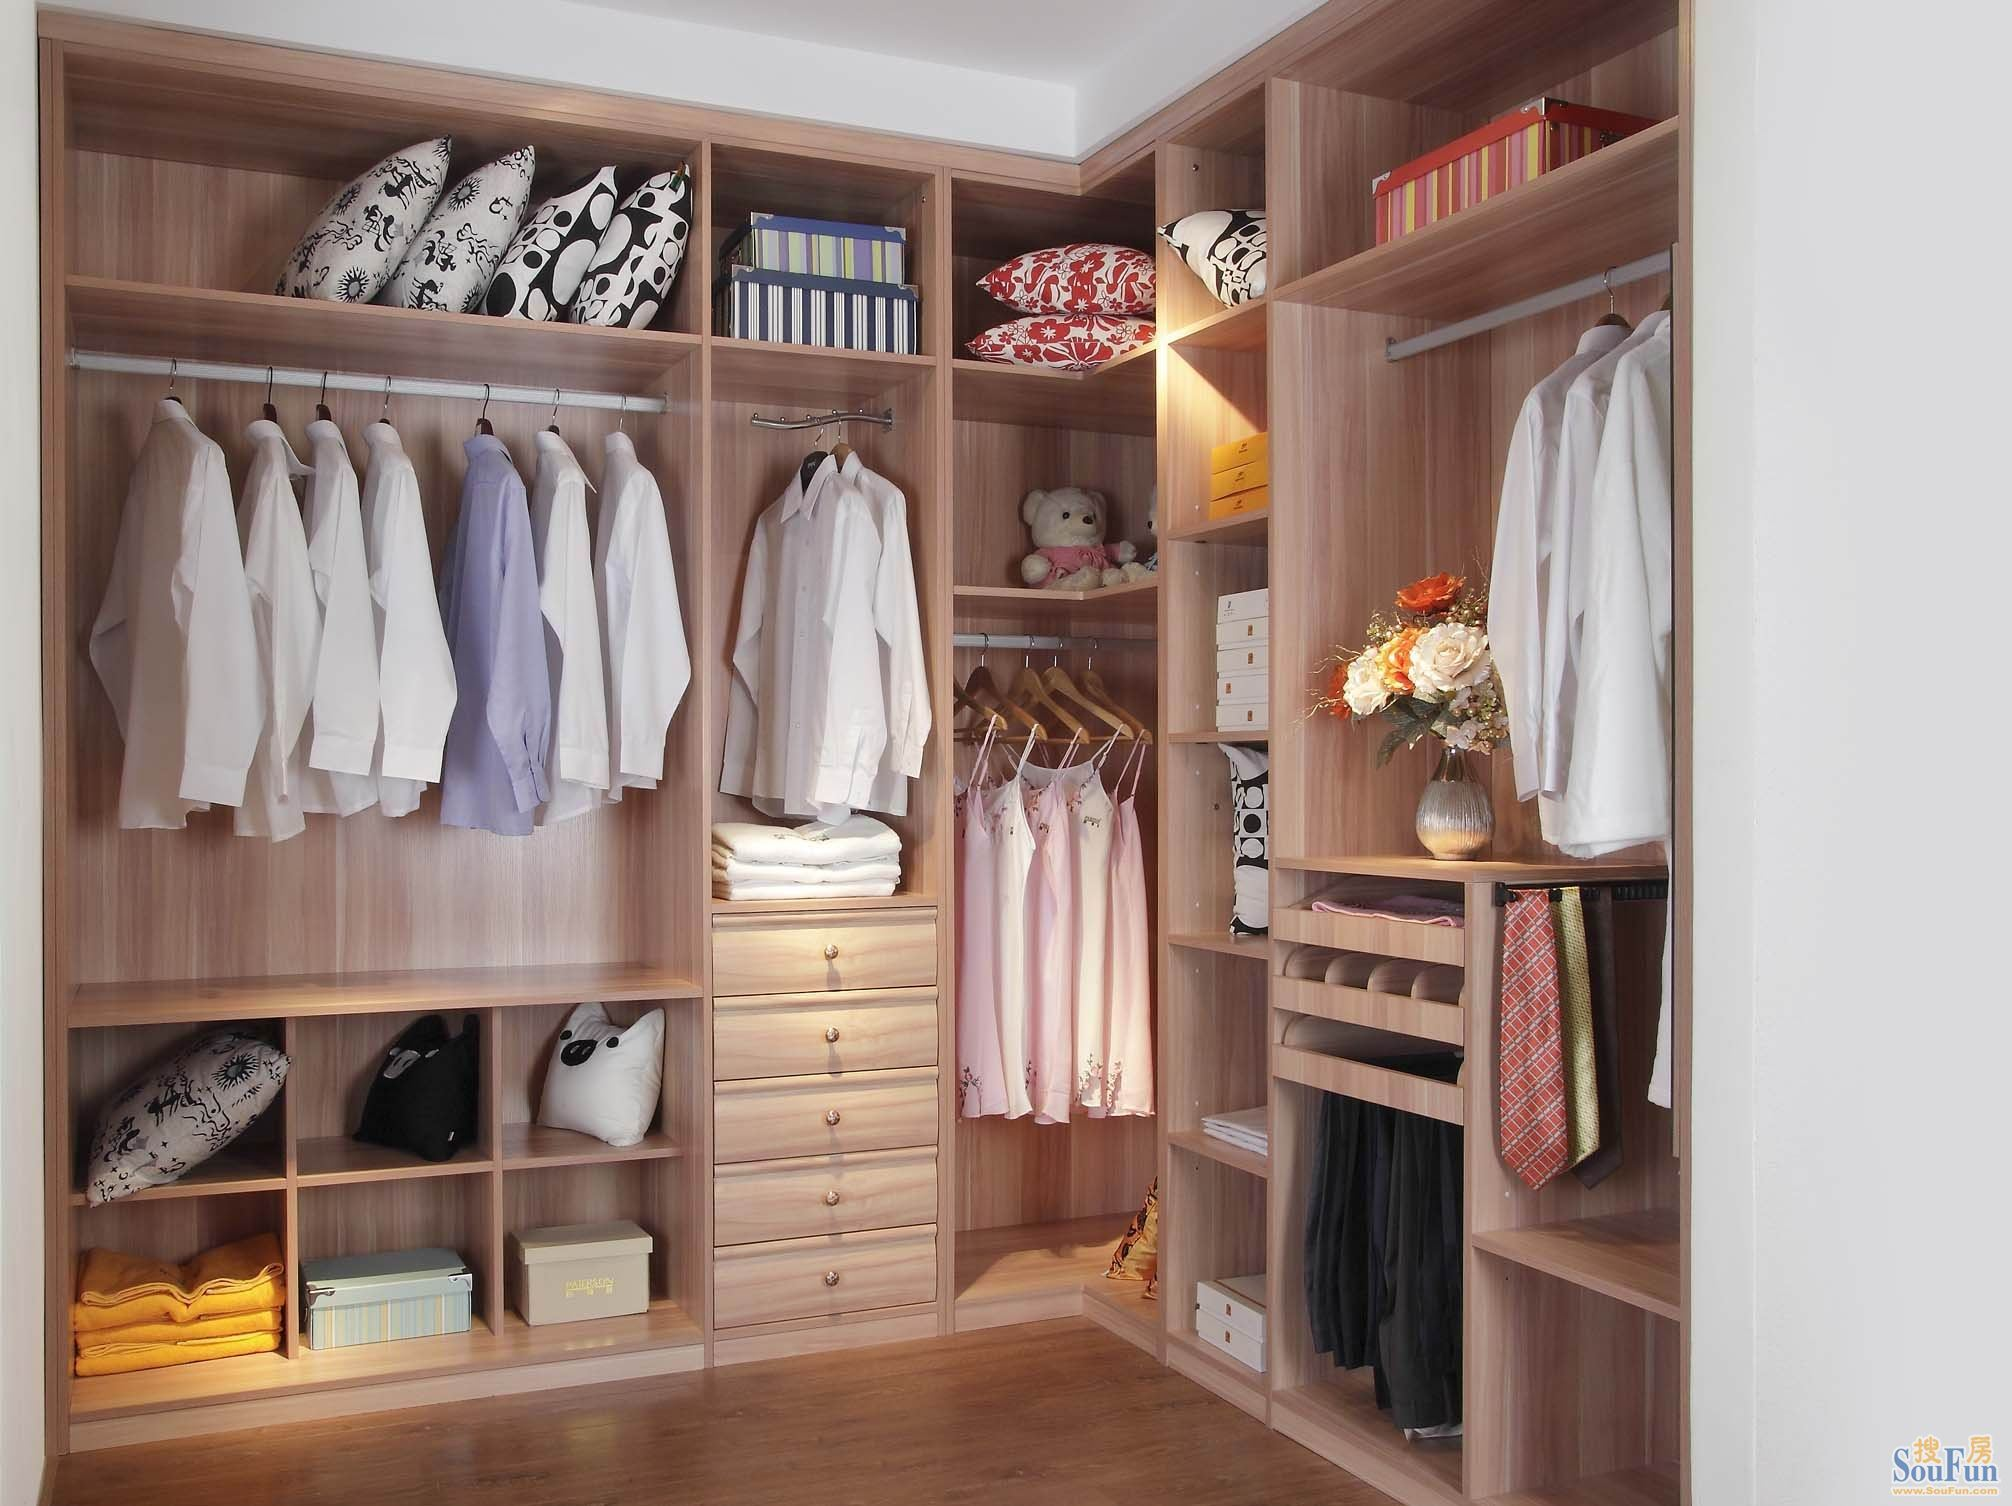 Europe Popular Bderoom Chest Walk in Wardrobe New Design